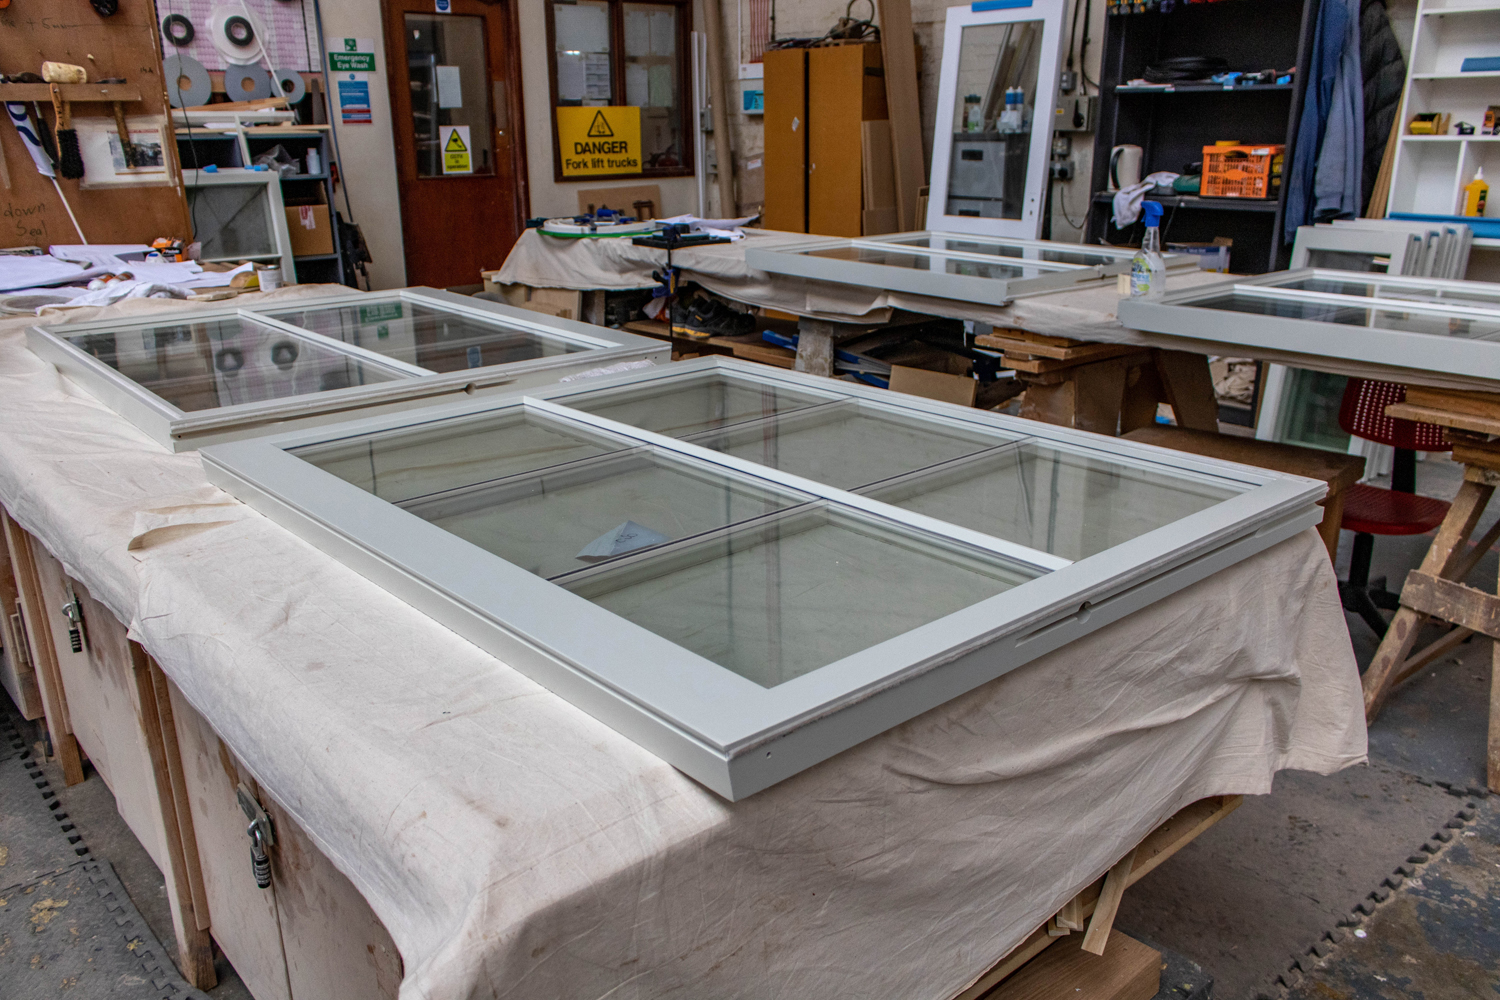 6 panel window unit being built with white paint job